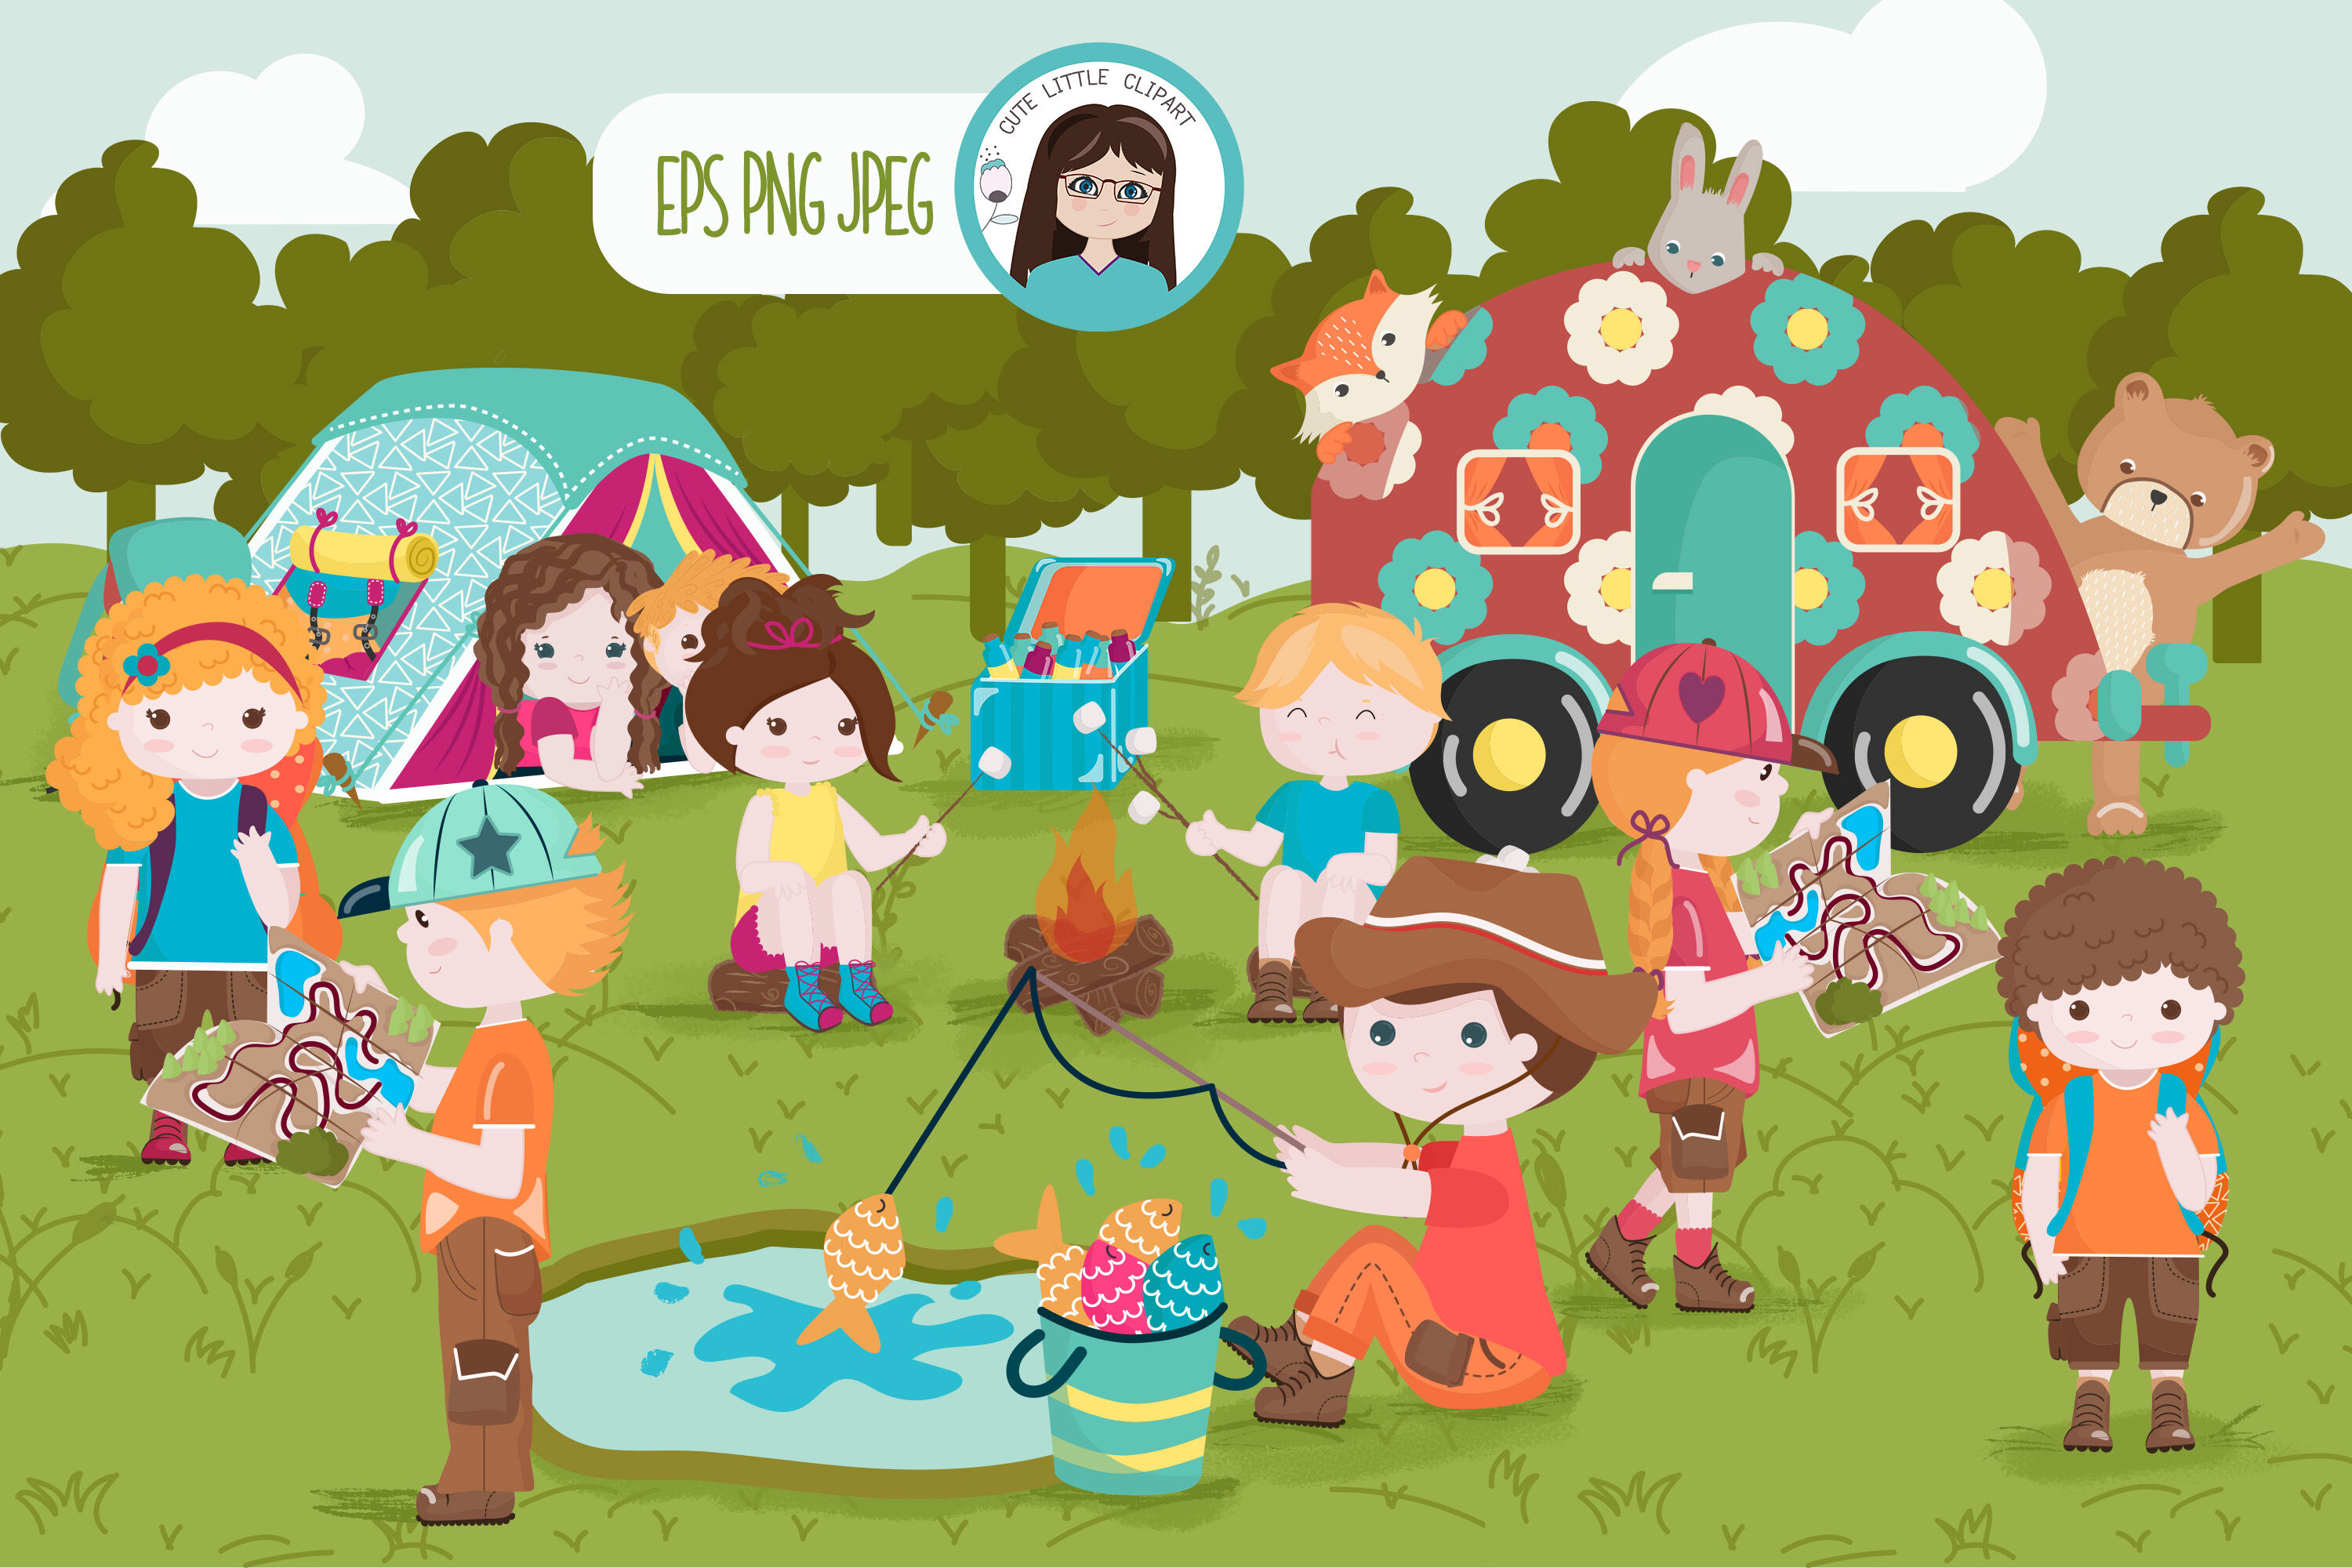 Get rid of hunger on can at a time clipart clipart freeuse library Camping fun time cliparts By Cute Little Workshop | TheHungryJPEG.com clipart freeuse library